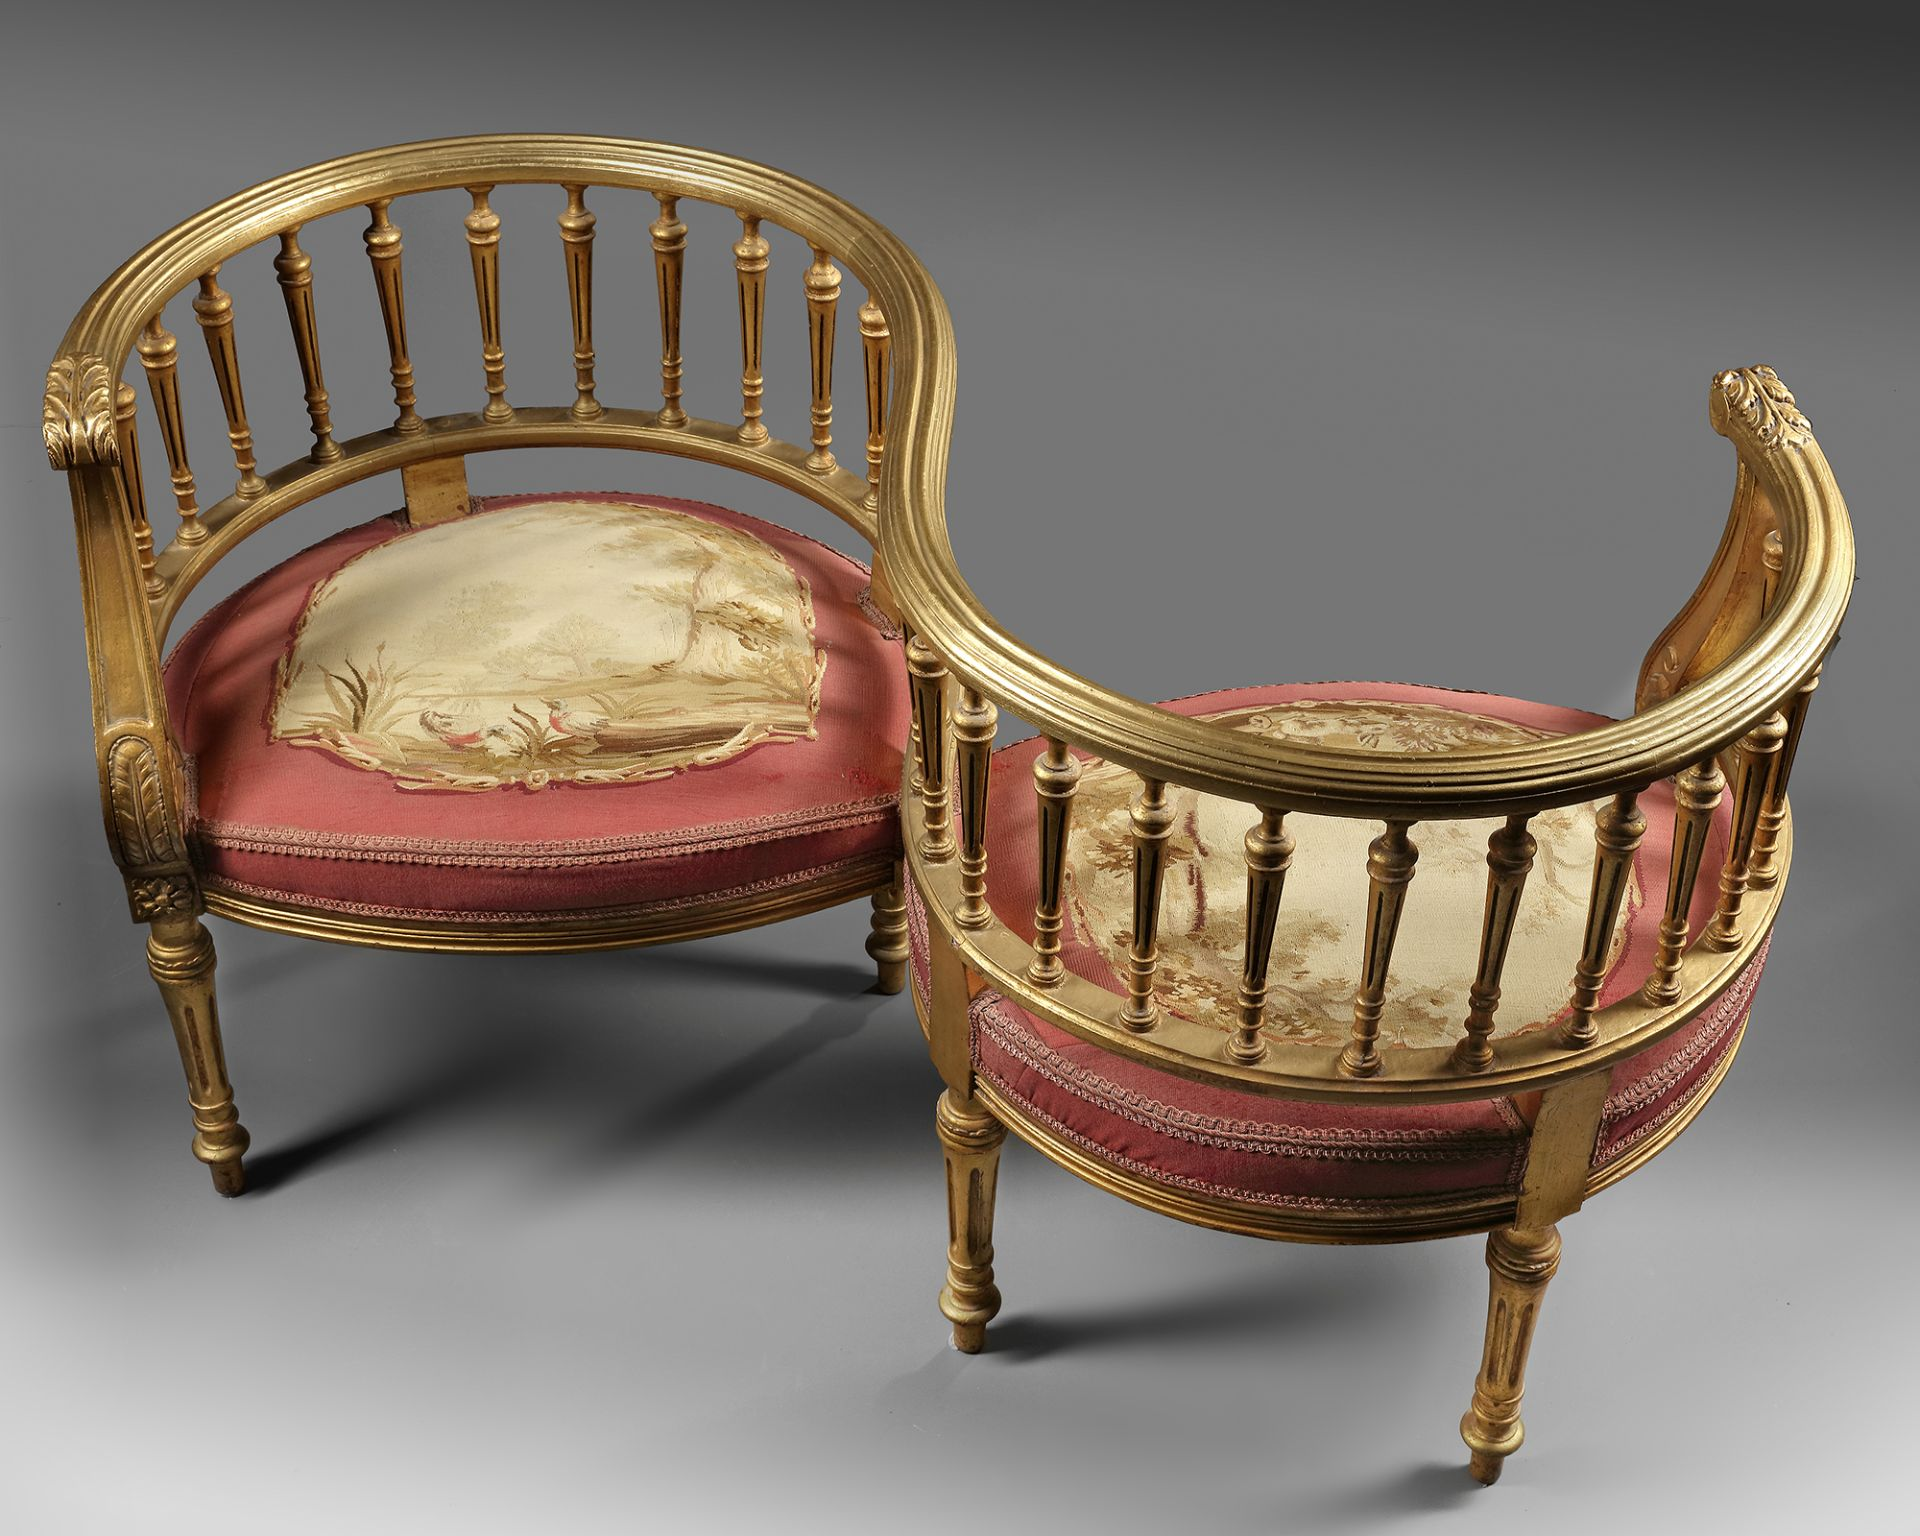 A PAIR OF CONNECTED 'HORSESHOE' CHAIRS, LATE 19TH CENTURY - Image 3 of 3